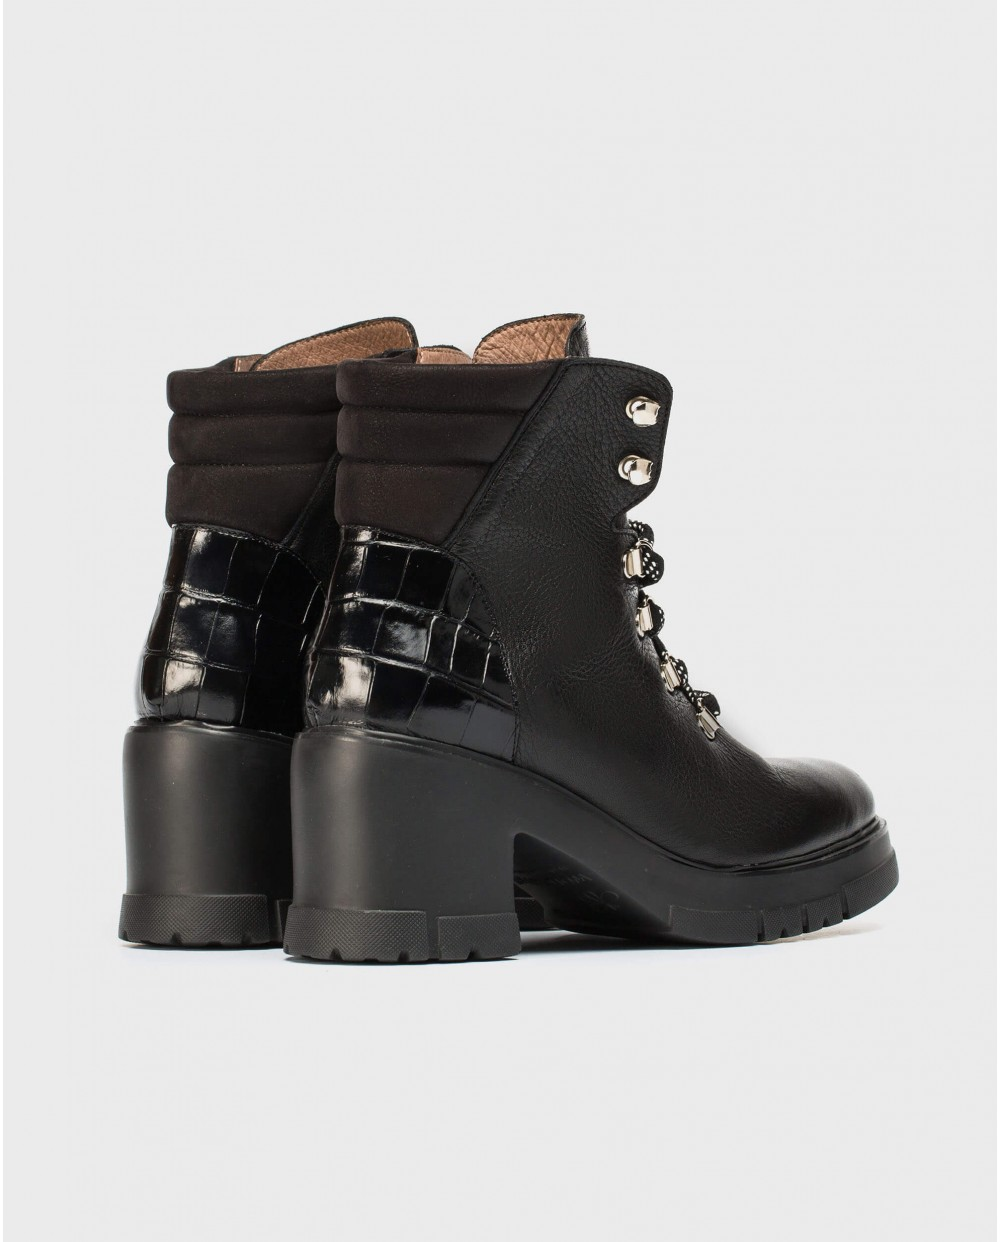 Wonders-Ankle Boots-Ankle boot with shoelace closure